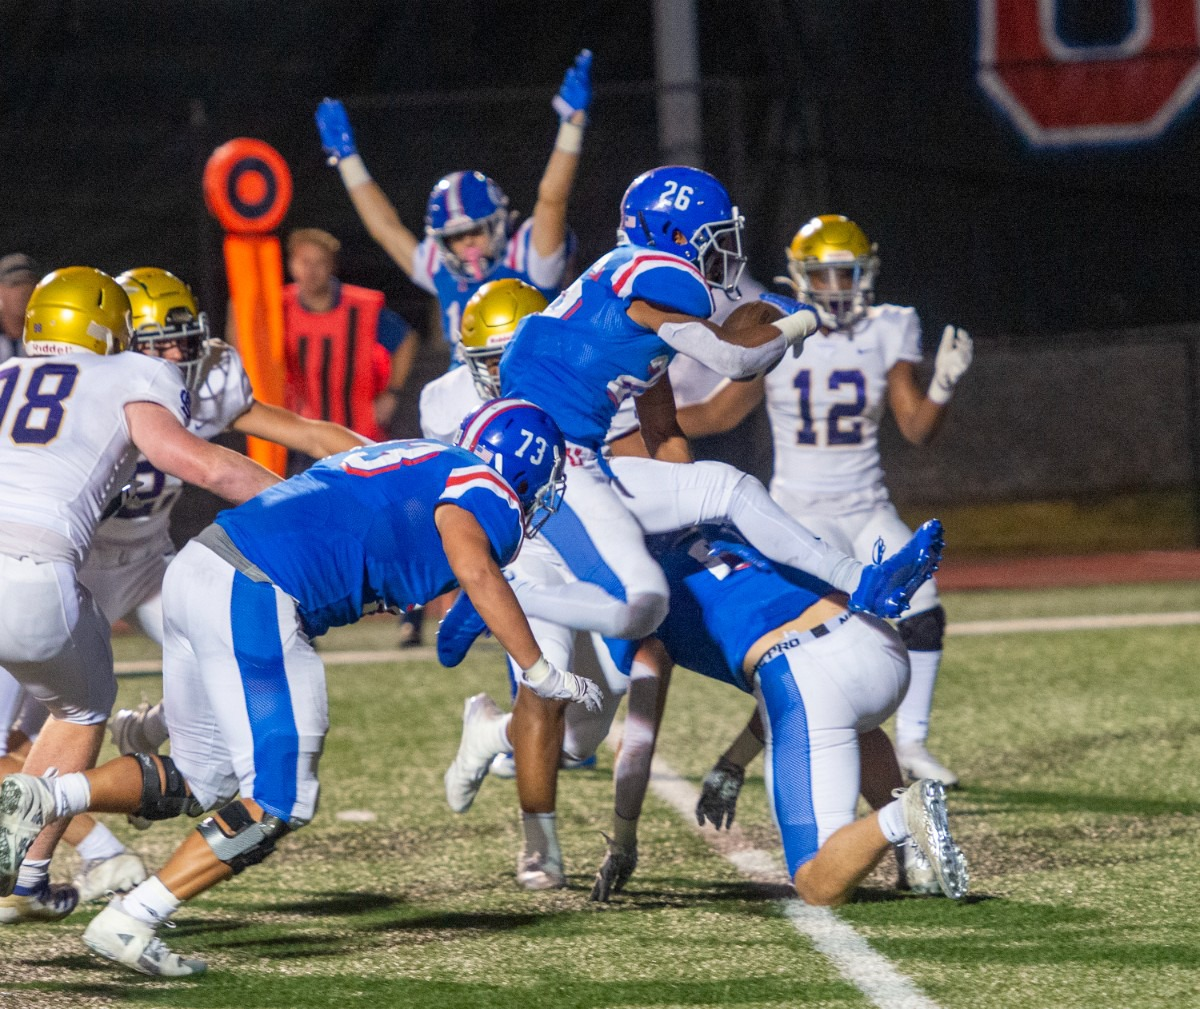 <strong>MUS running back Hunter Barnes crosses over the goal line for his second running touchdown of the night in the crosstown rivalry with CBHS on Friday, Oct. 15, 2021.</strong> (Greg Campbell/Special to The Daily Memphian)